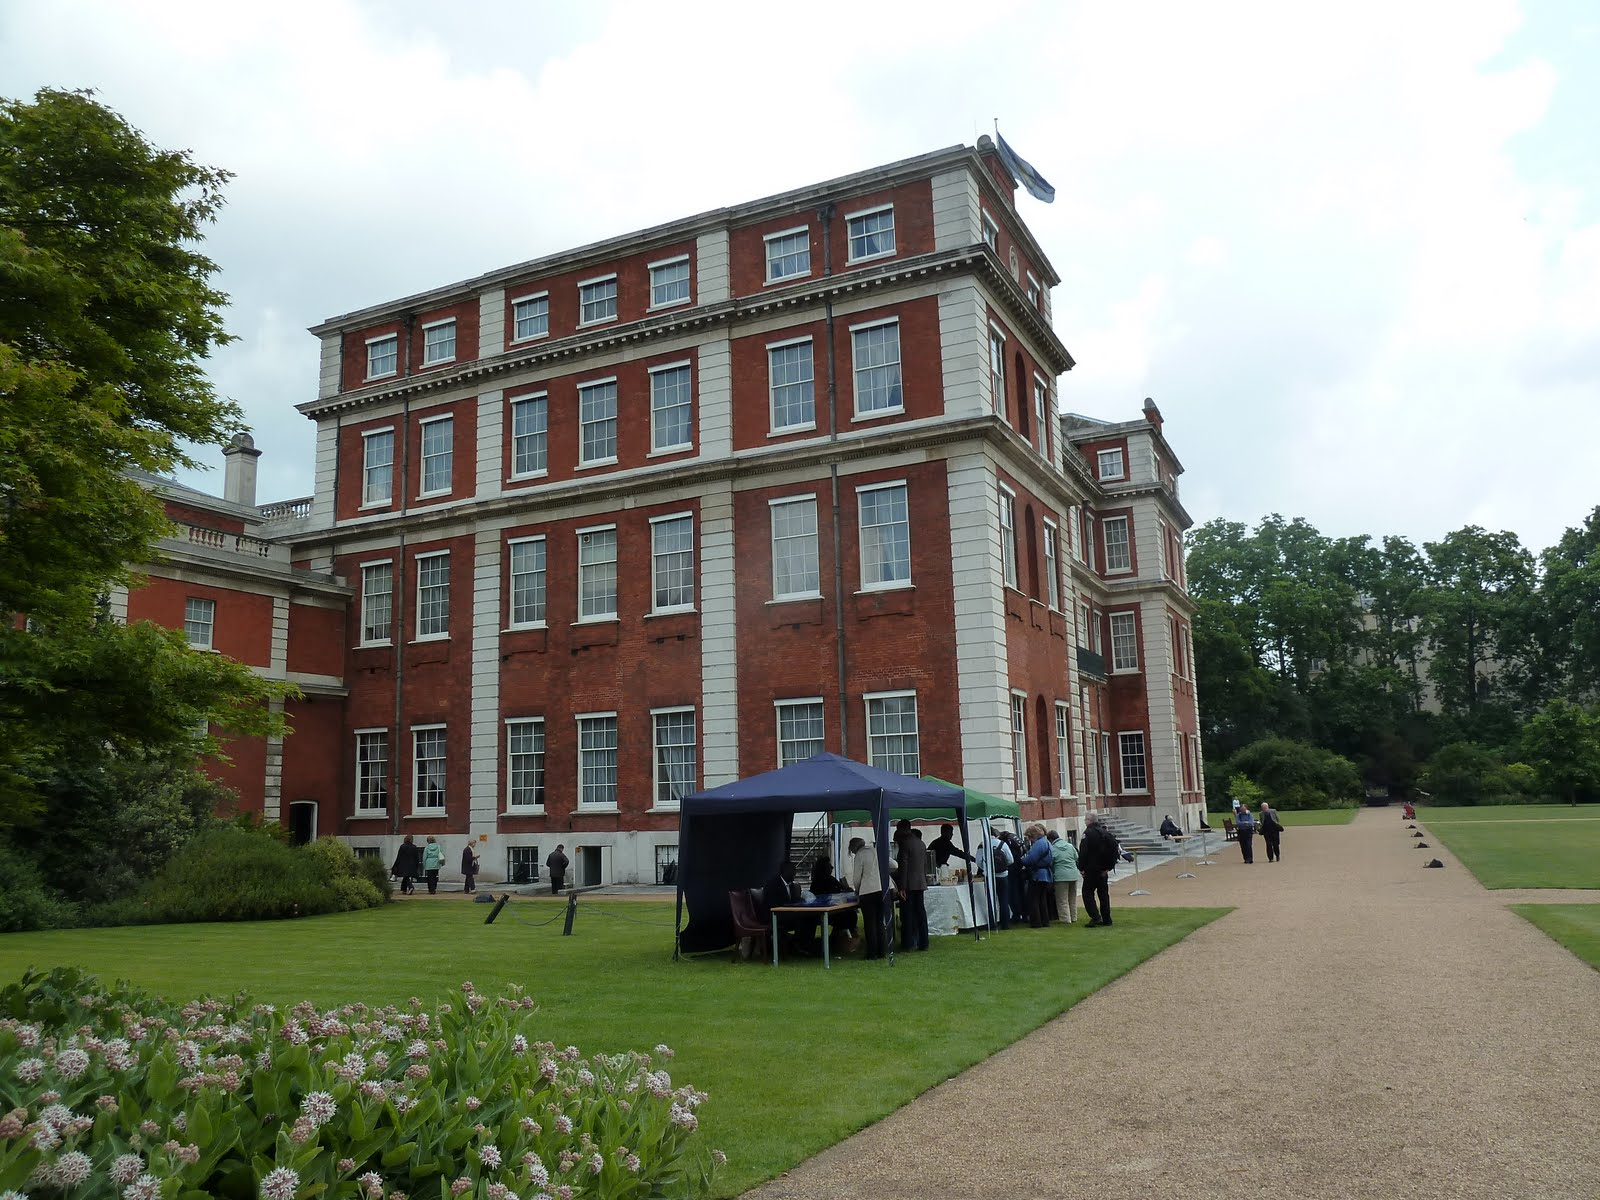 Travels With Victoria: Marlborough House – Number One London